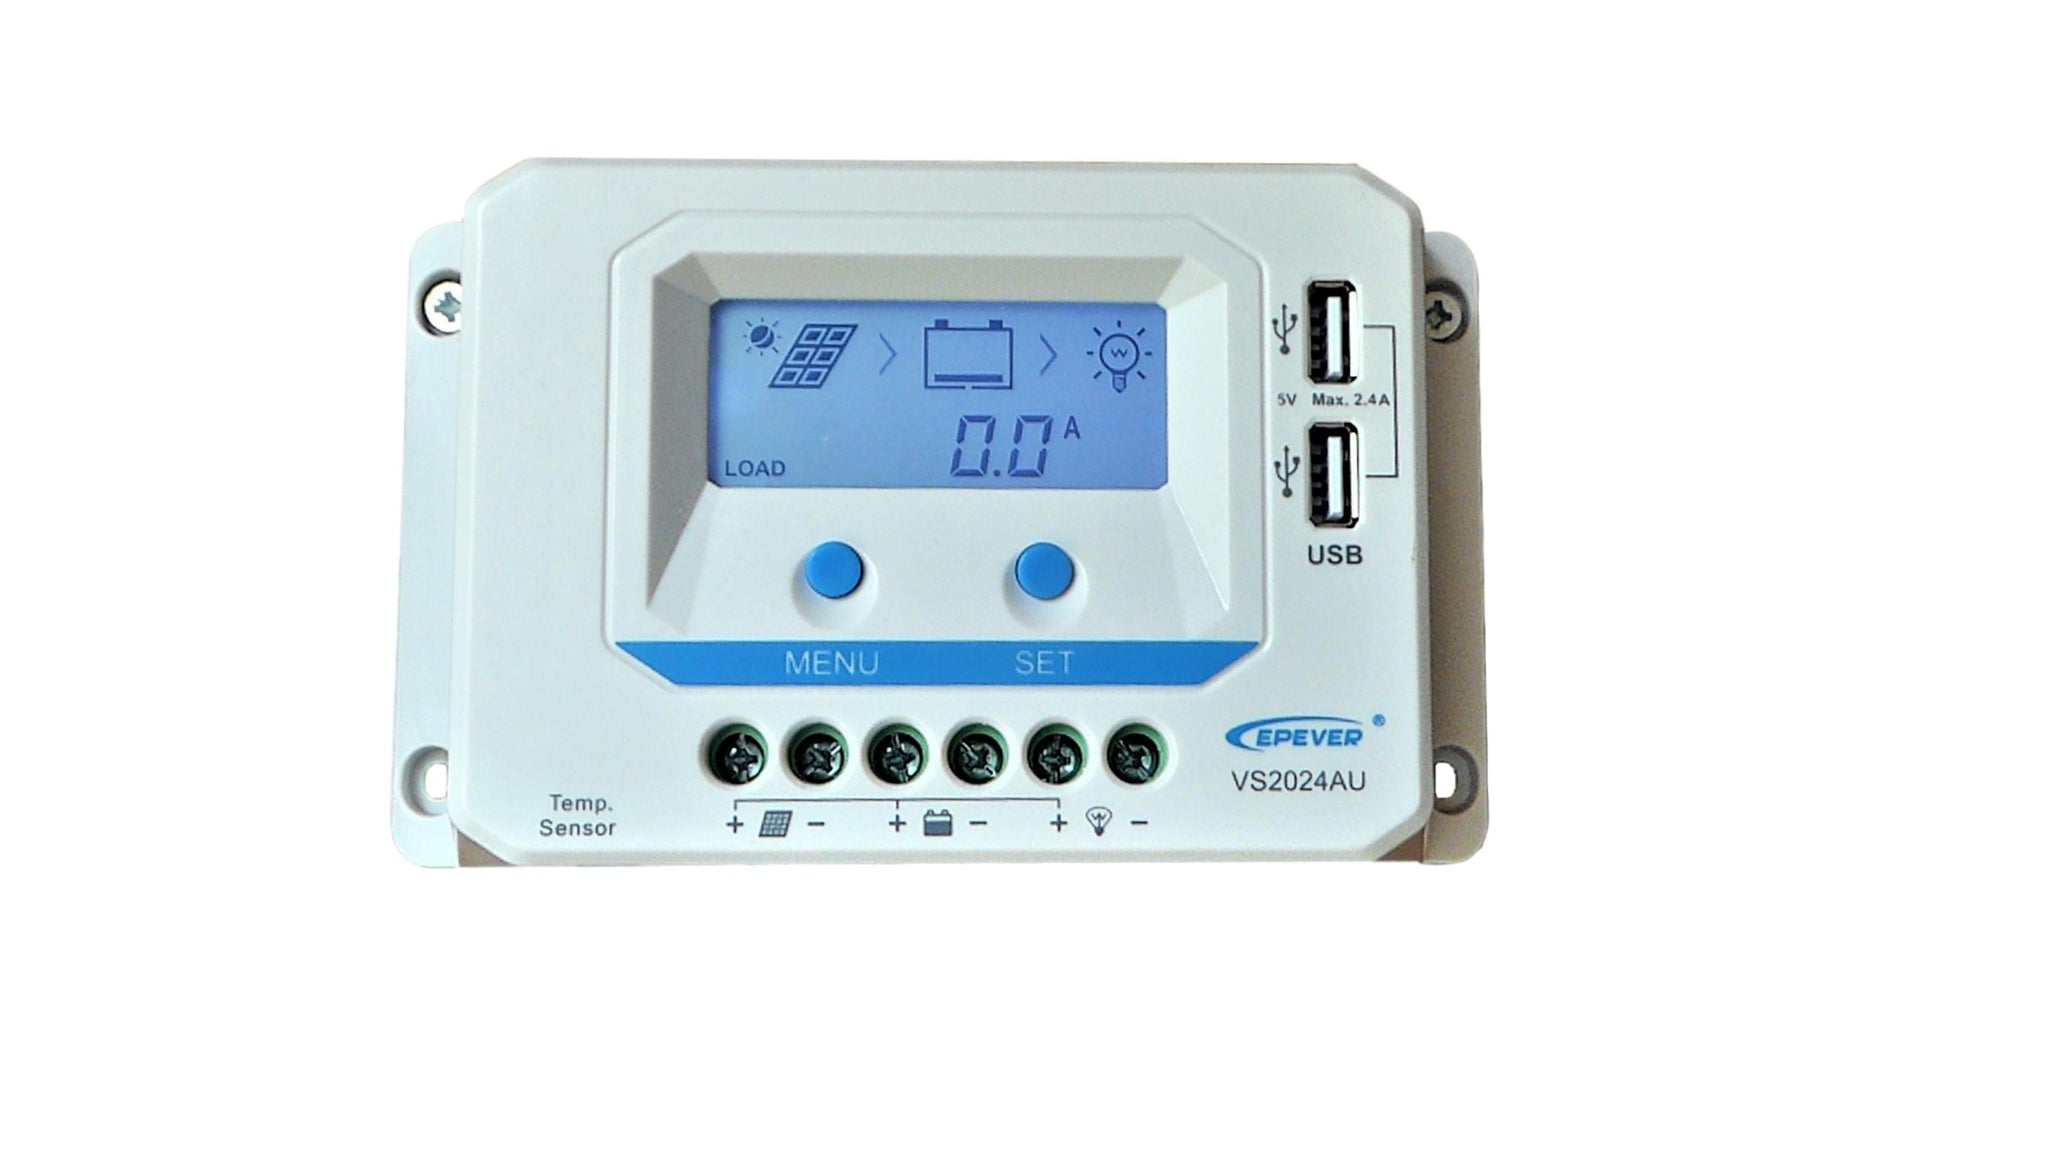 20A PWM Solar Regulator with large LCD screen